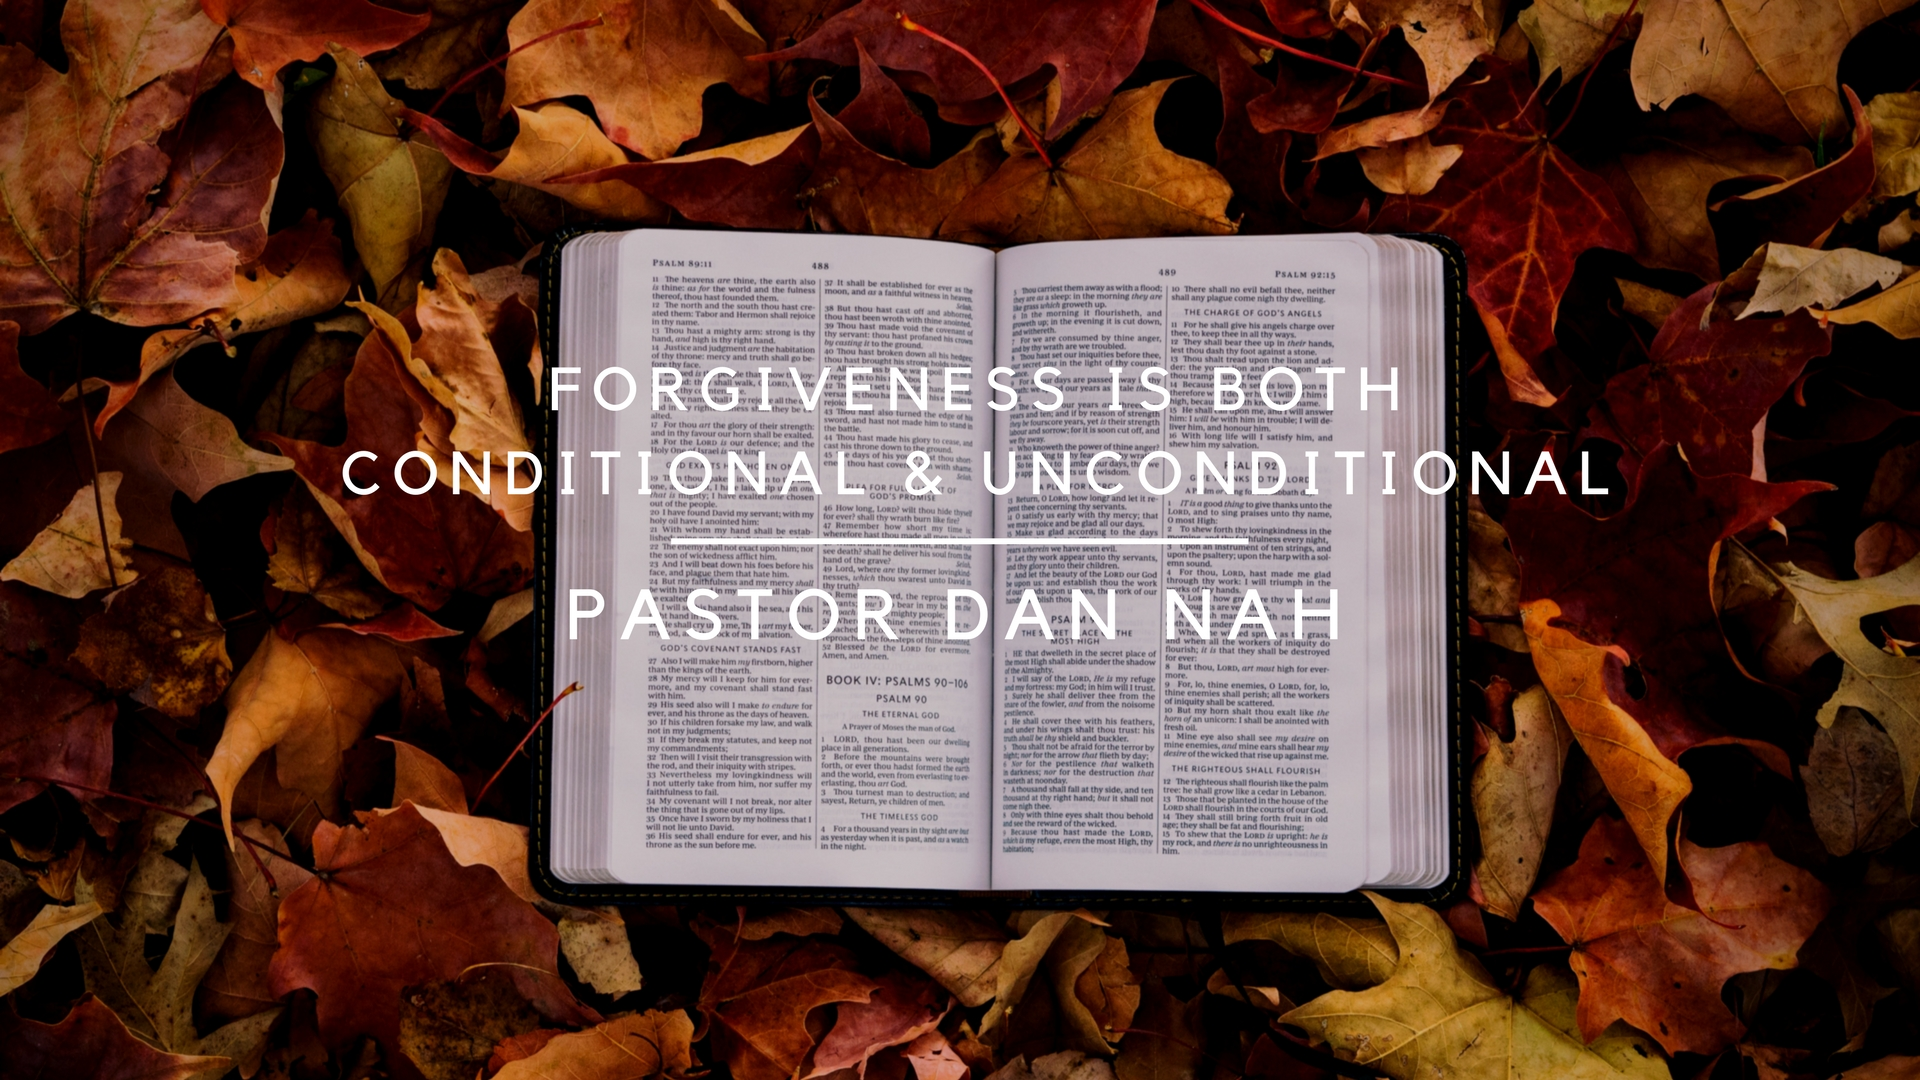 forgiveness-conditional-unconditional